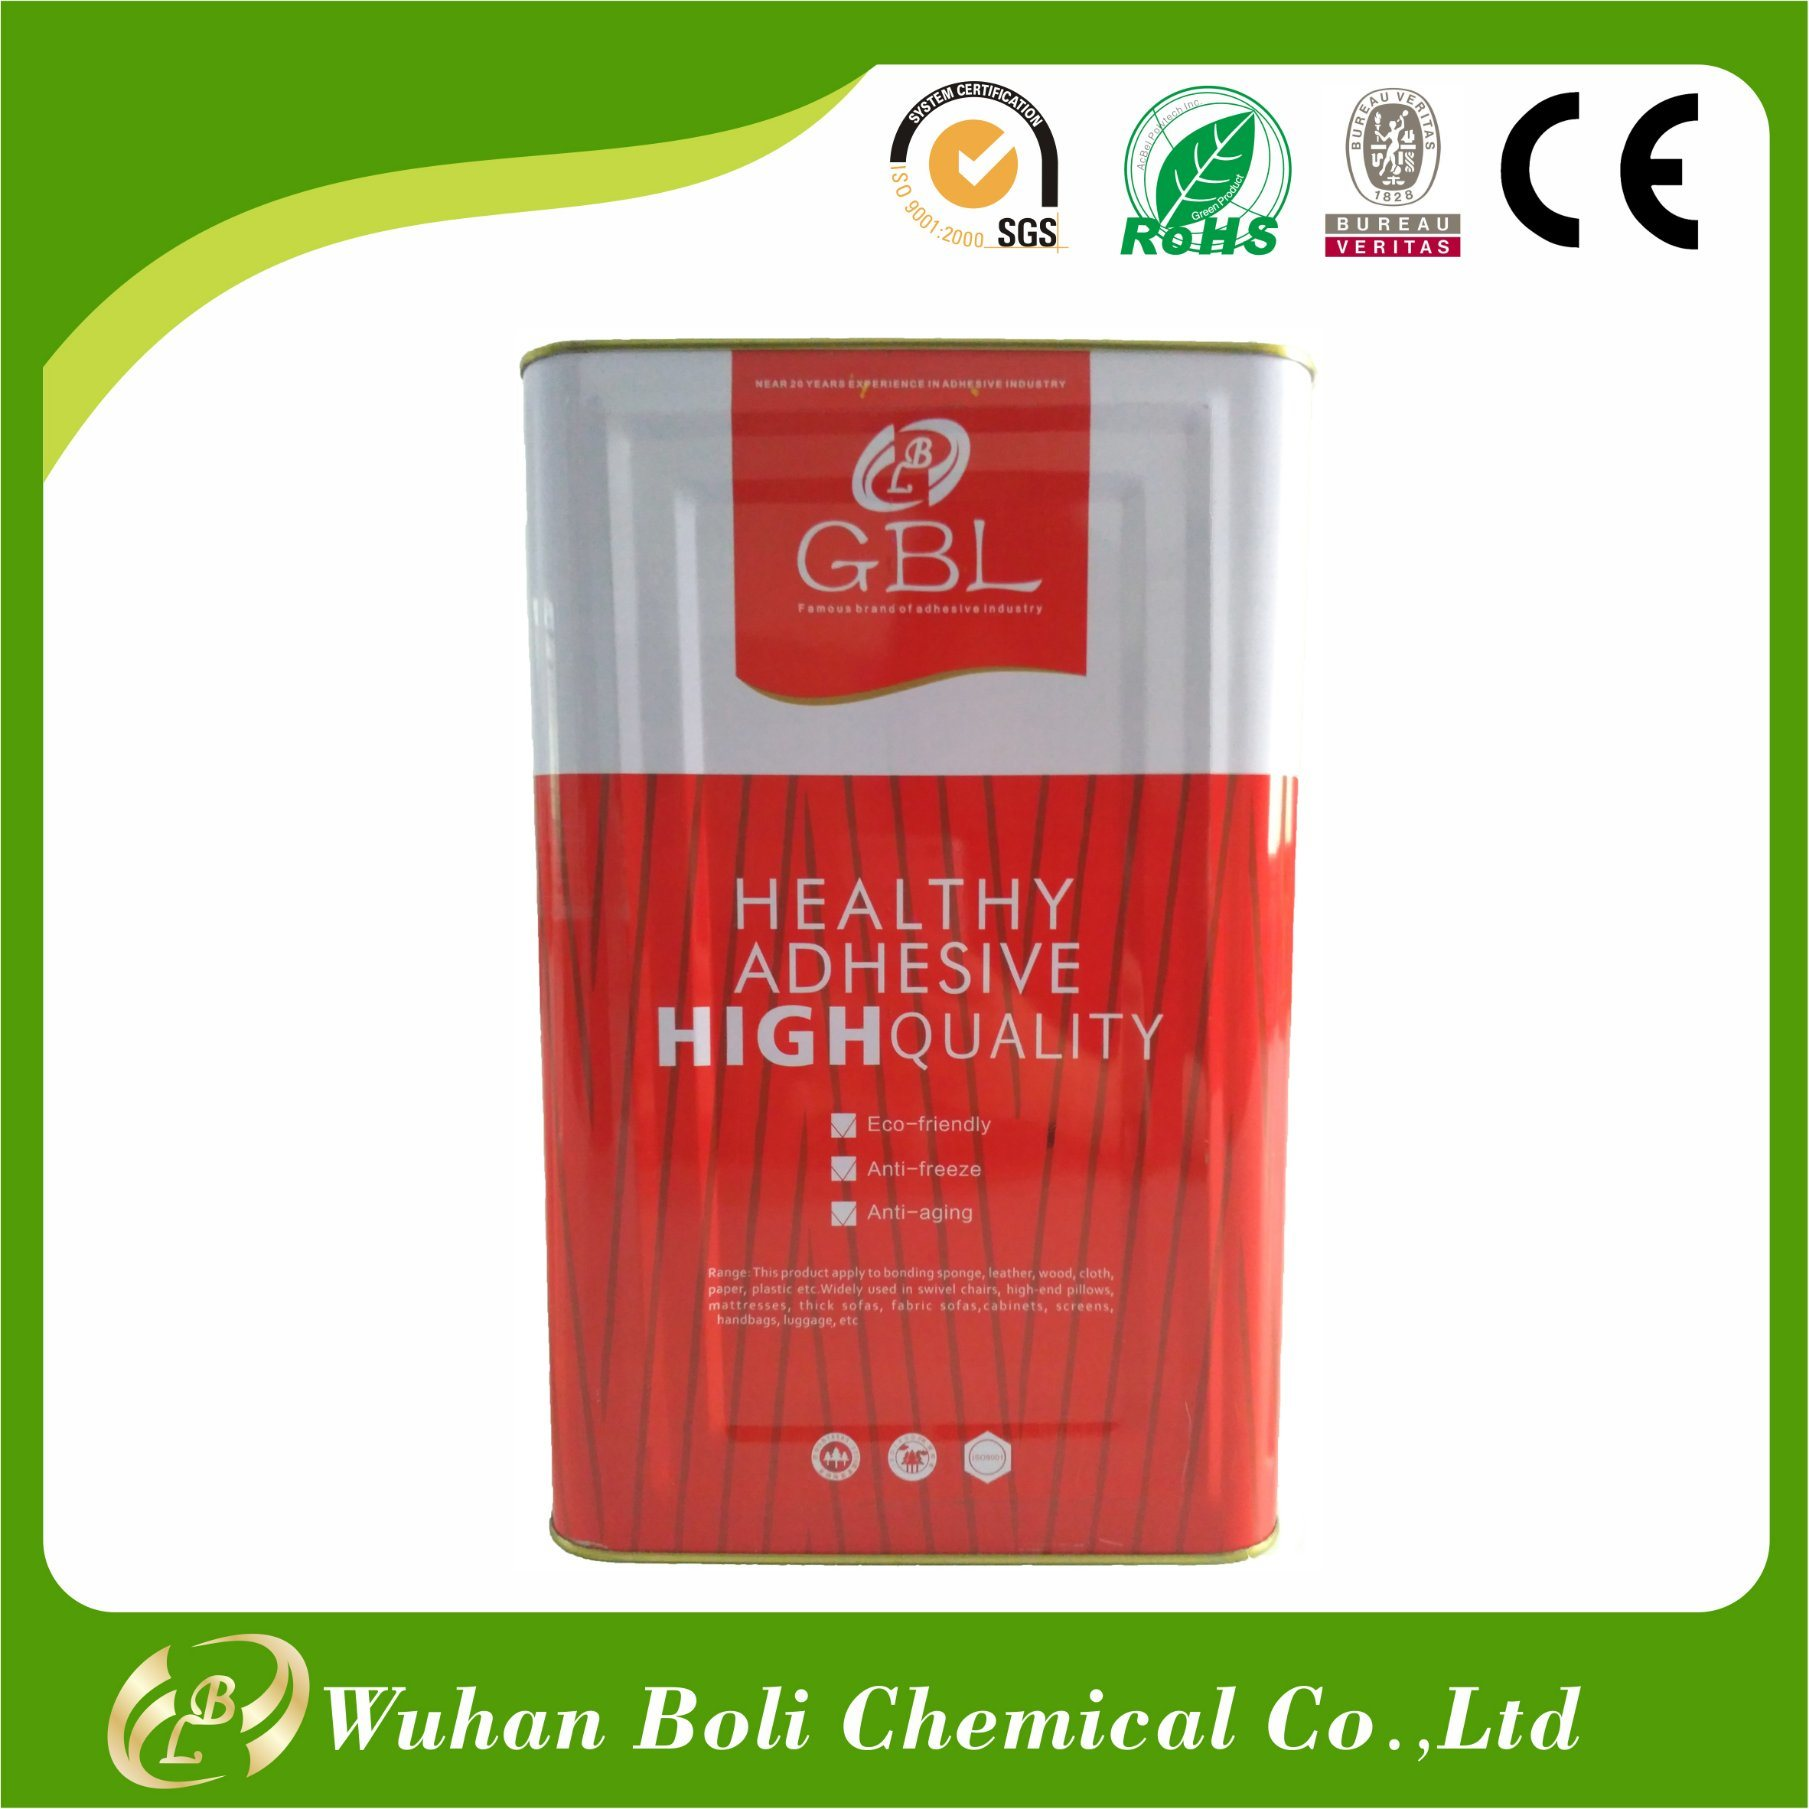 GBL Multi-Purpose New Good Sell Spray Adhesive